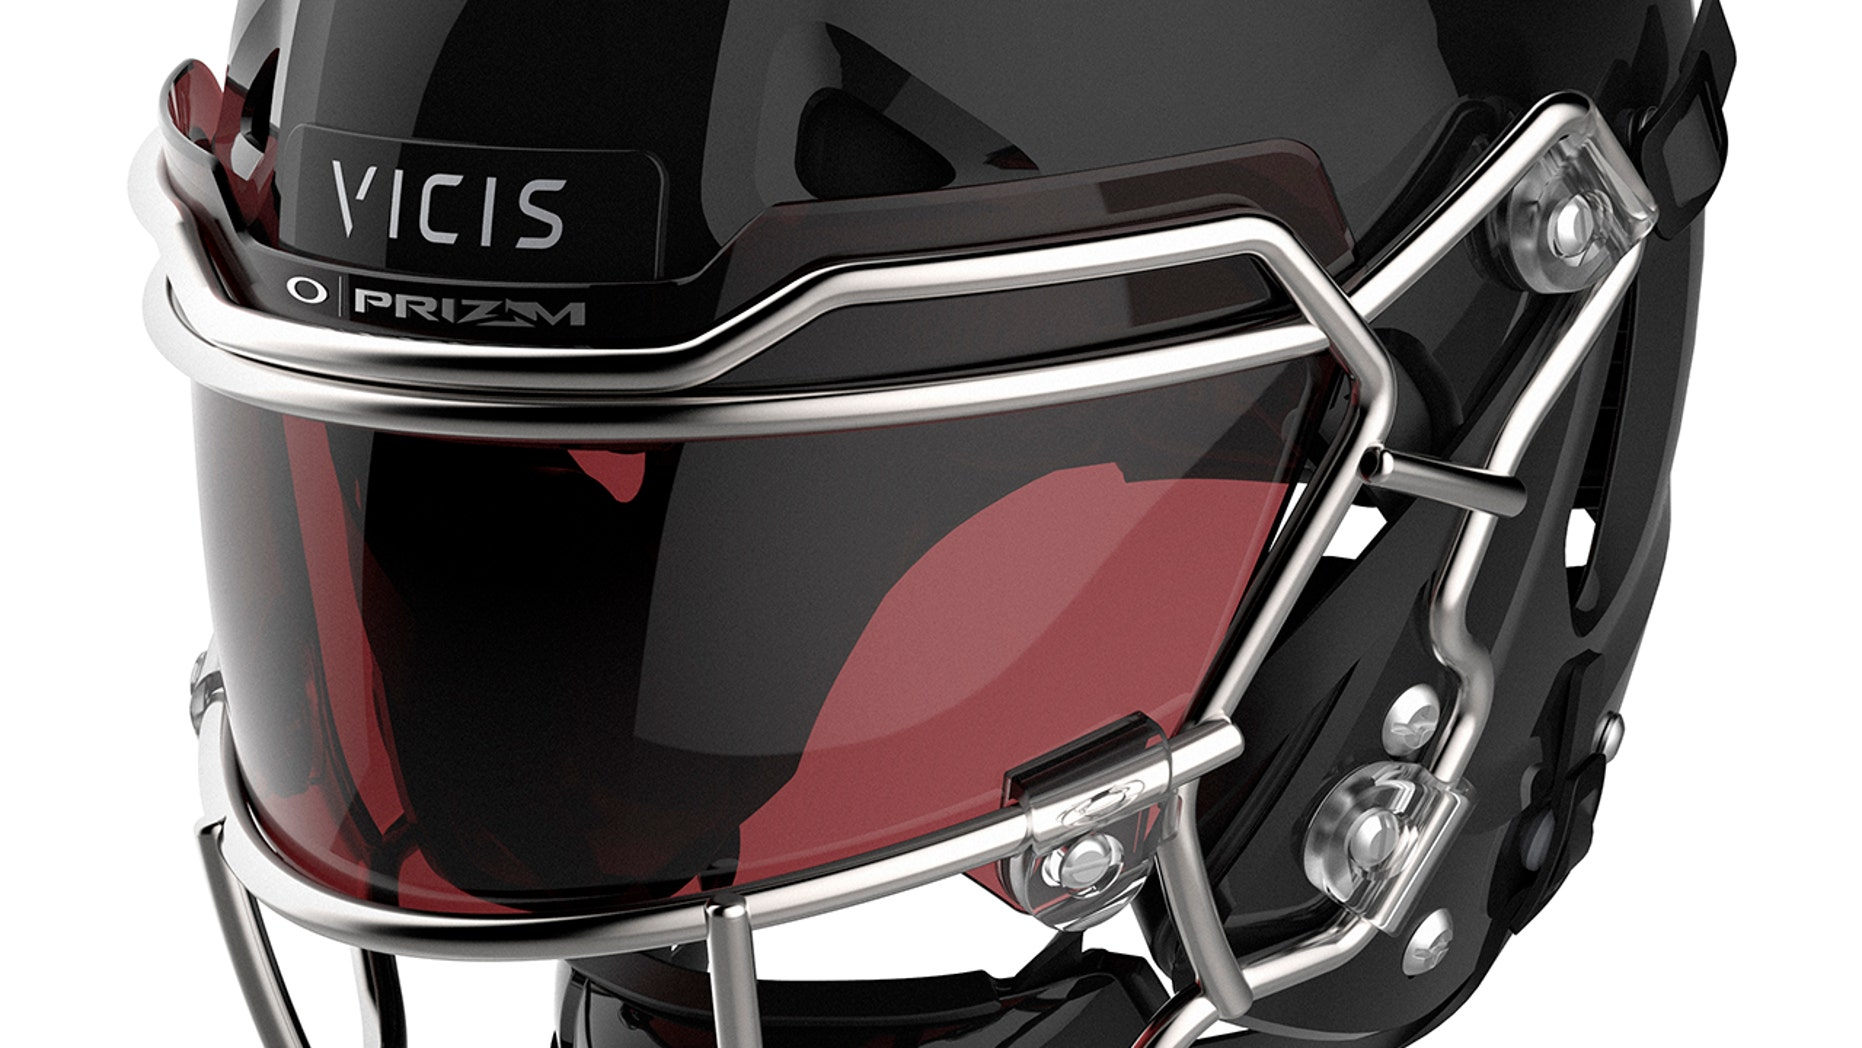 VICIS, maker of the Zero1 football helmet, is partnering with the U.S. Army to research ways to reduce head injuries in the military through a development grant announced Tuesday.